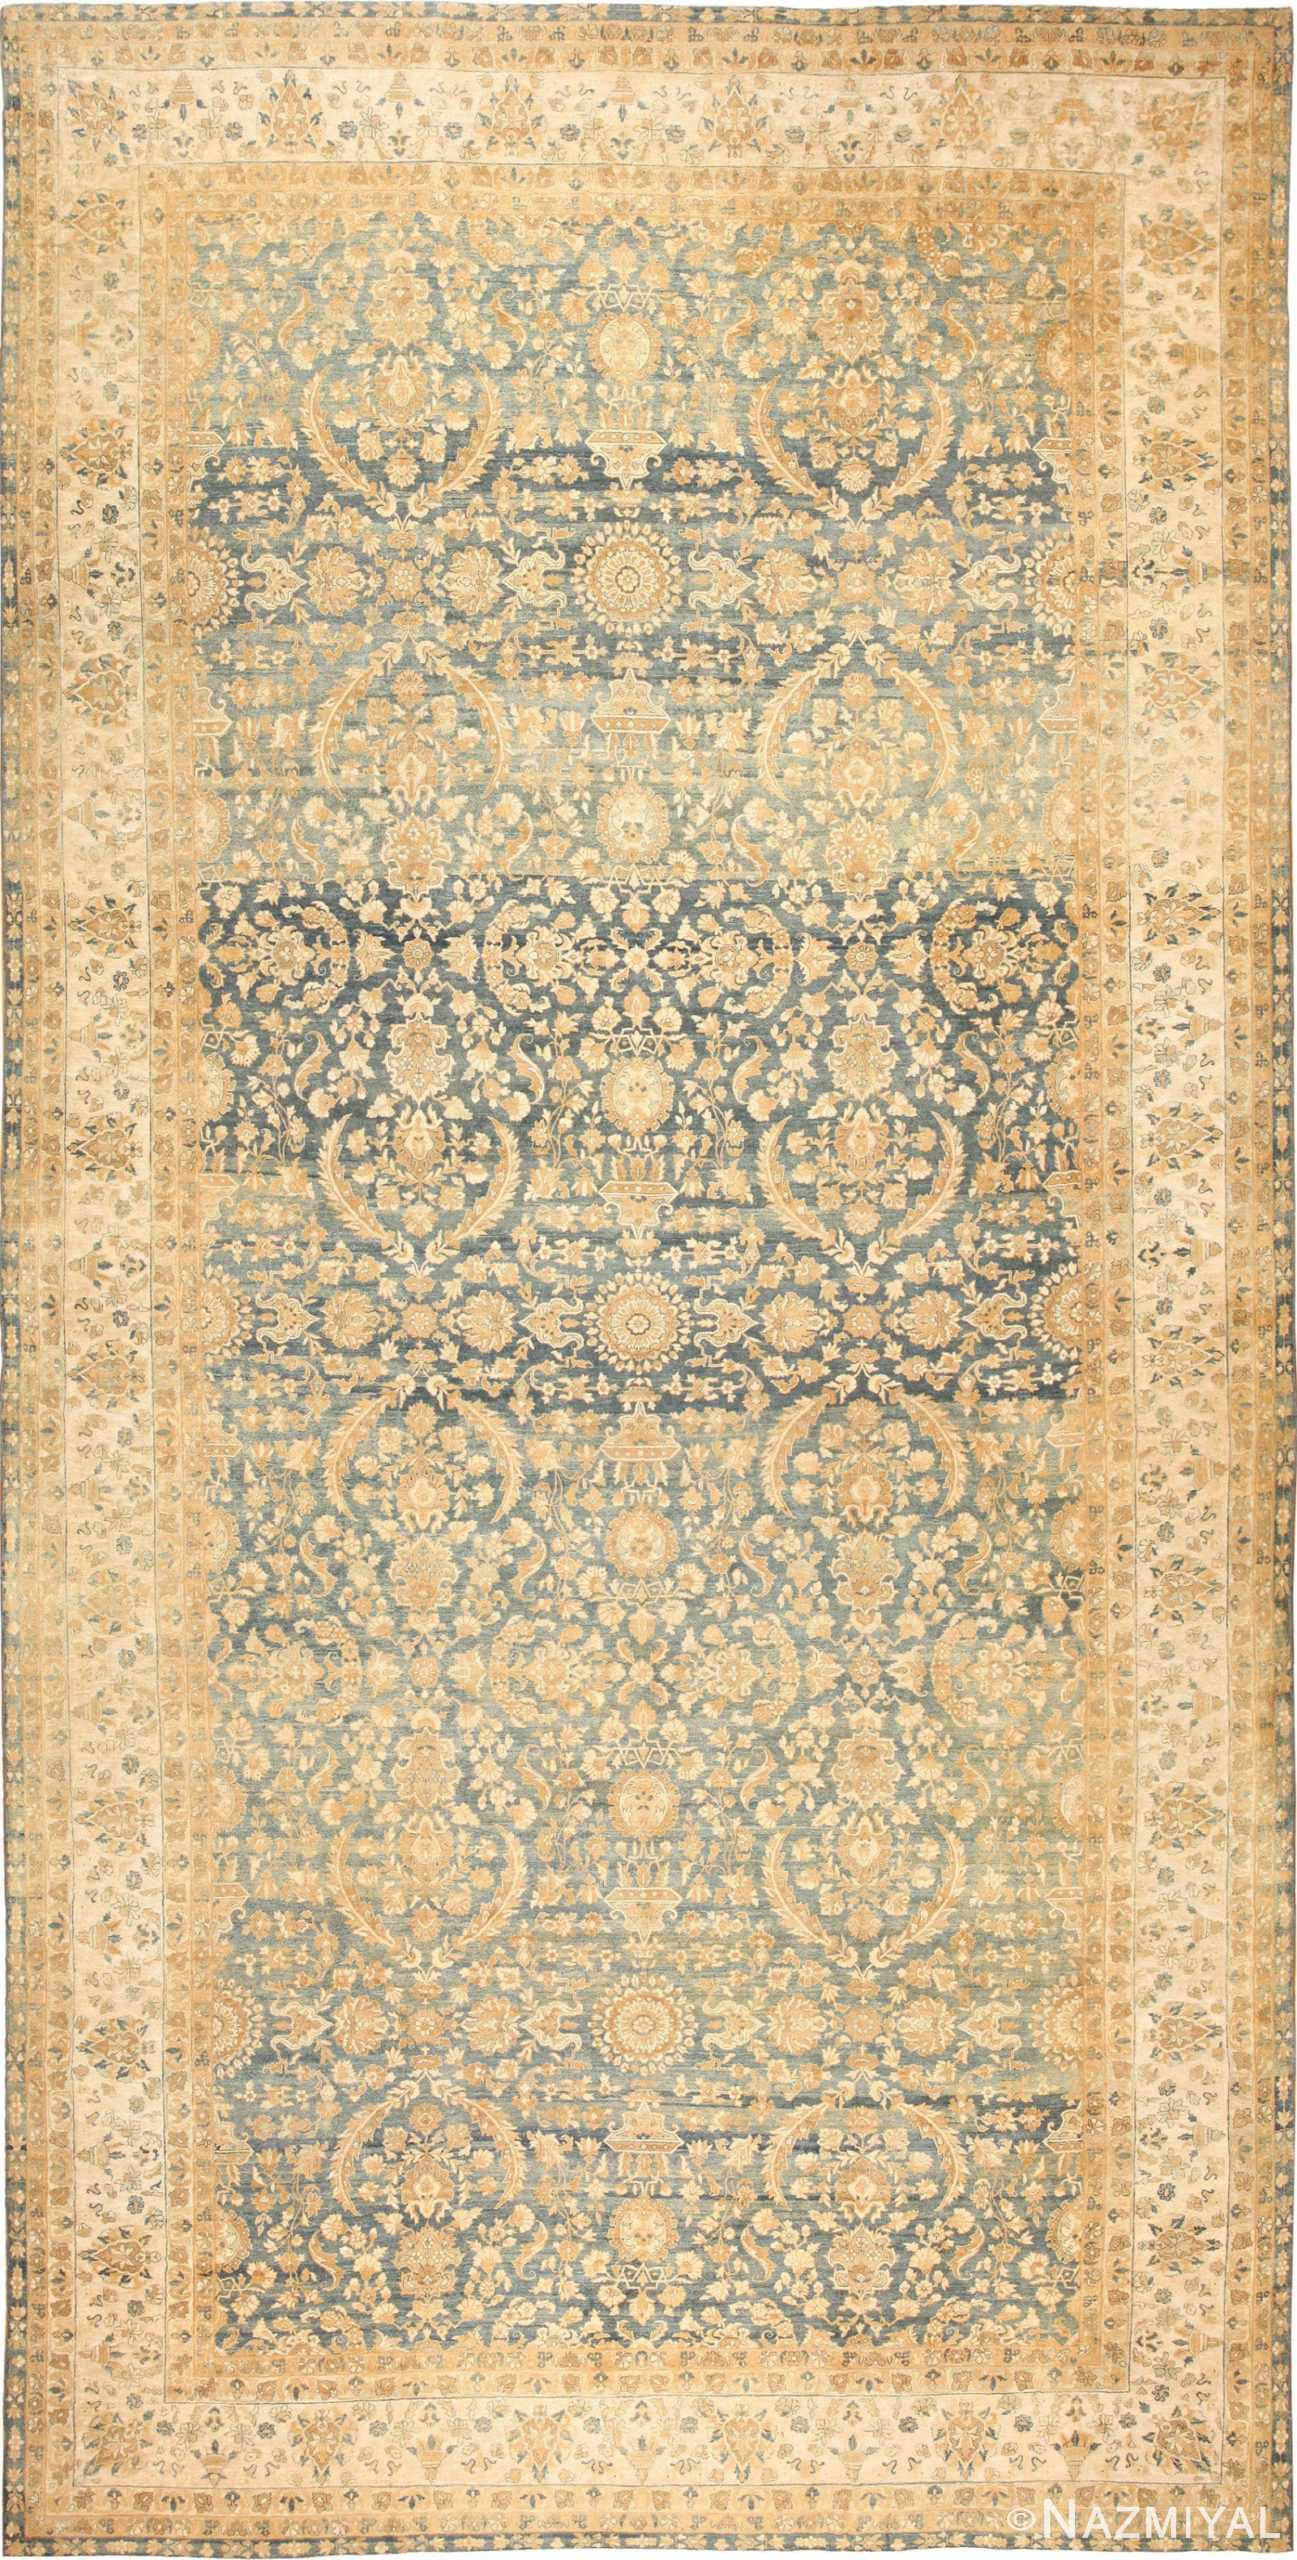 Blue Oversized Antique Persian Kerman Rug 48226 Nazmiyal Rugs